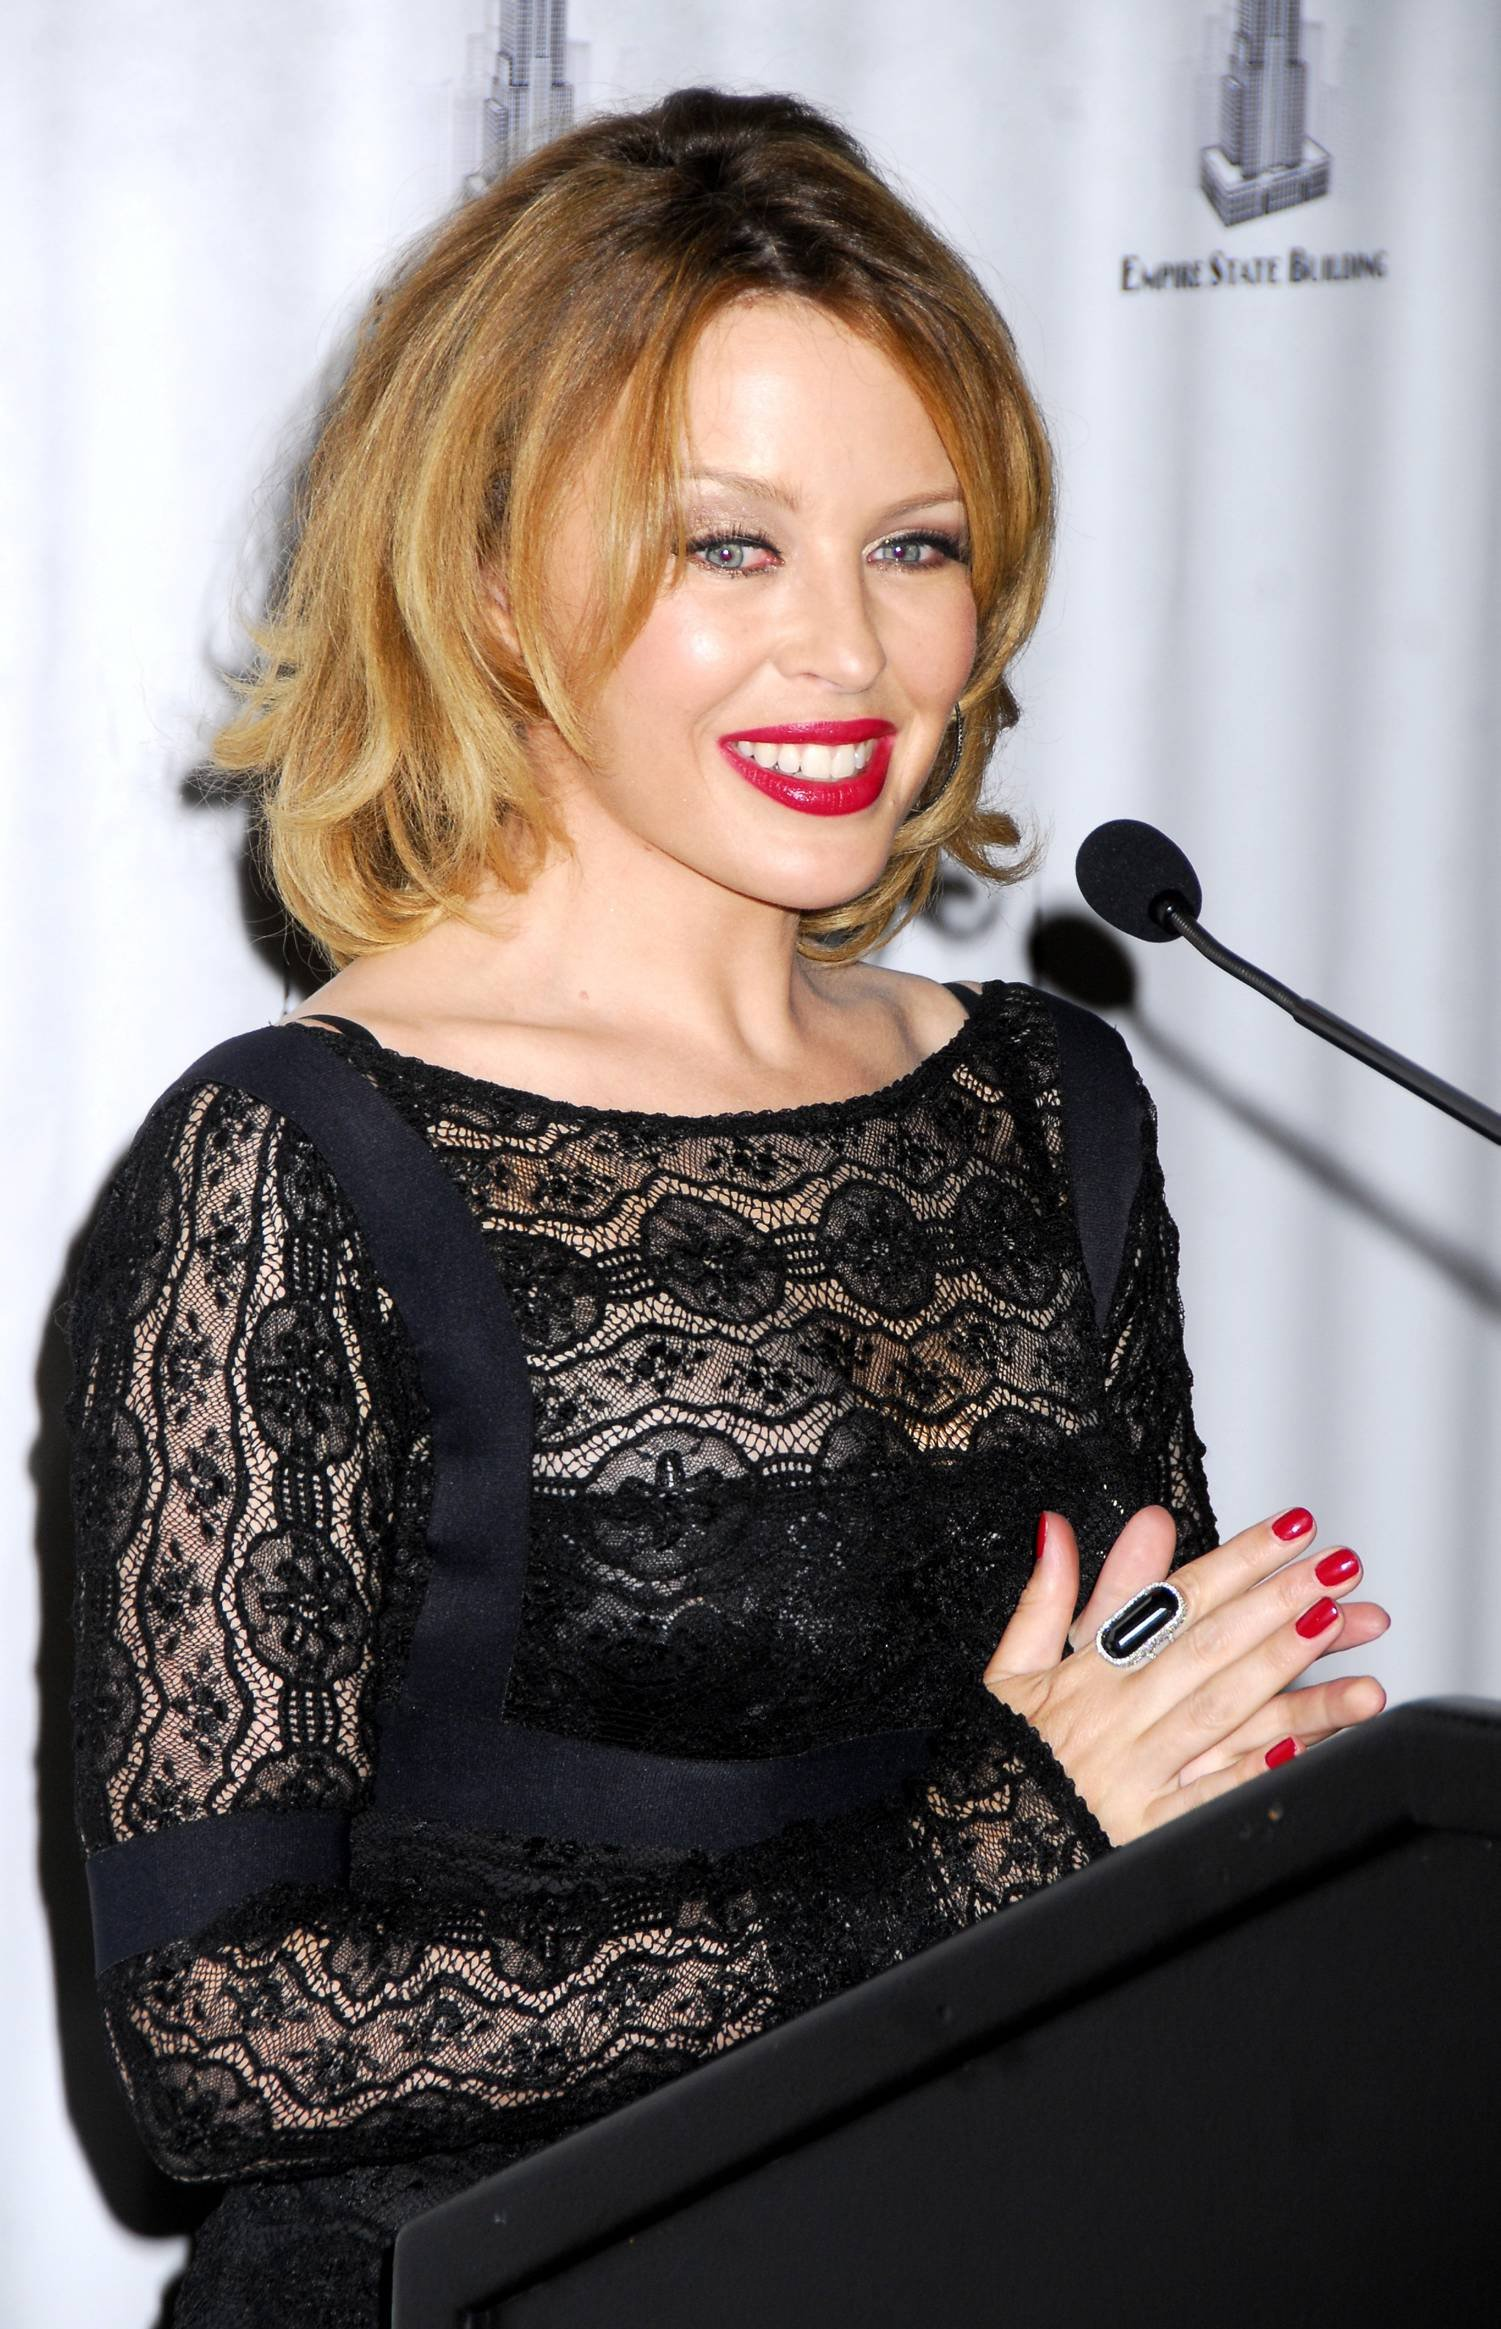 28983_Celebutopia-Kylie_Minogue_lights_The_Empire_State_Building-16_122_589lo.jpg